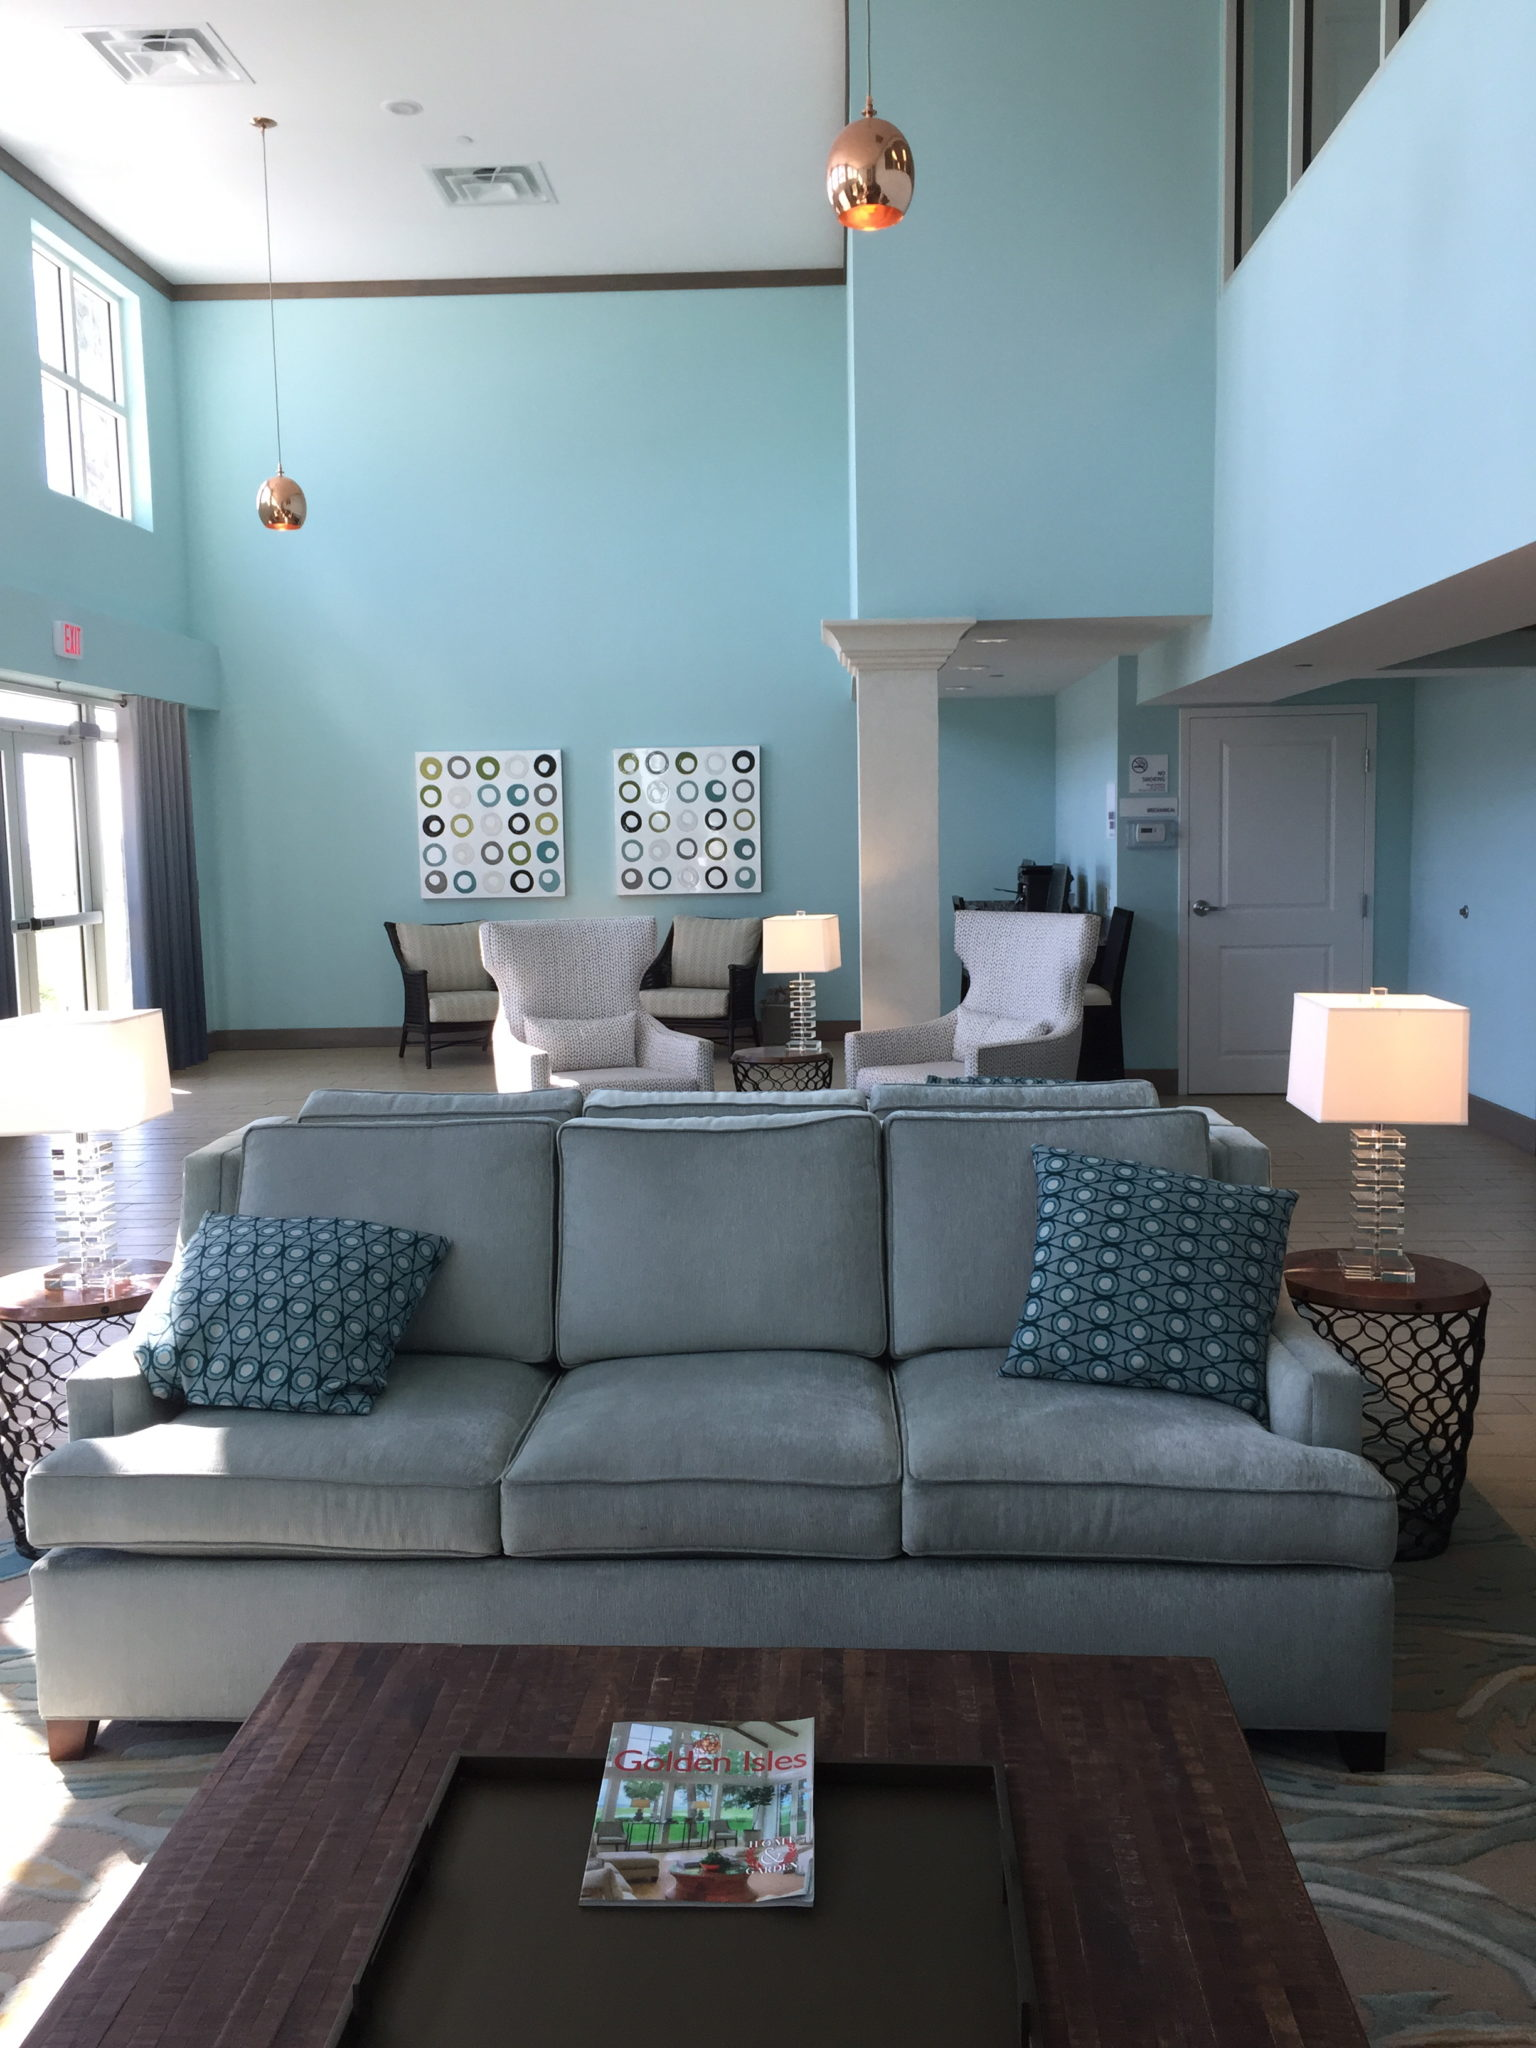 Lobby decorated in sea colors at the Holiday Inn on Jekyll Island